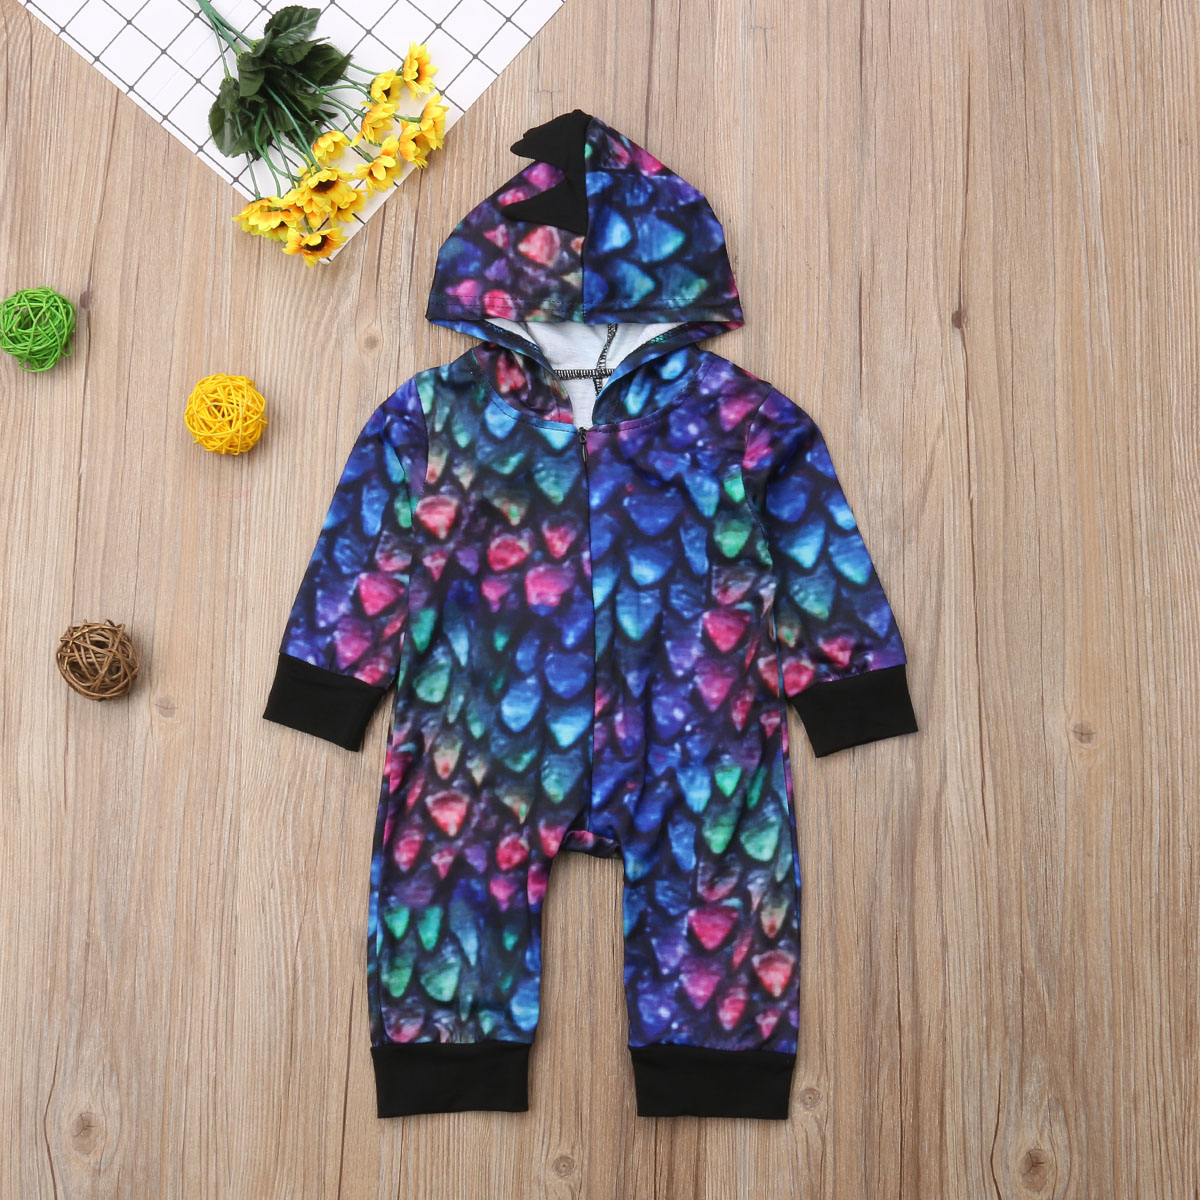 Newborn Baby Girl Boy Clothes Colorful Cute Animals Romper Long Sleeve Warm Cute Jumpsuit Outfits Baby Boys 0-24M